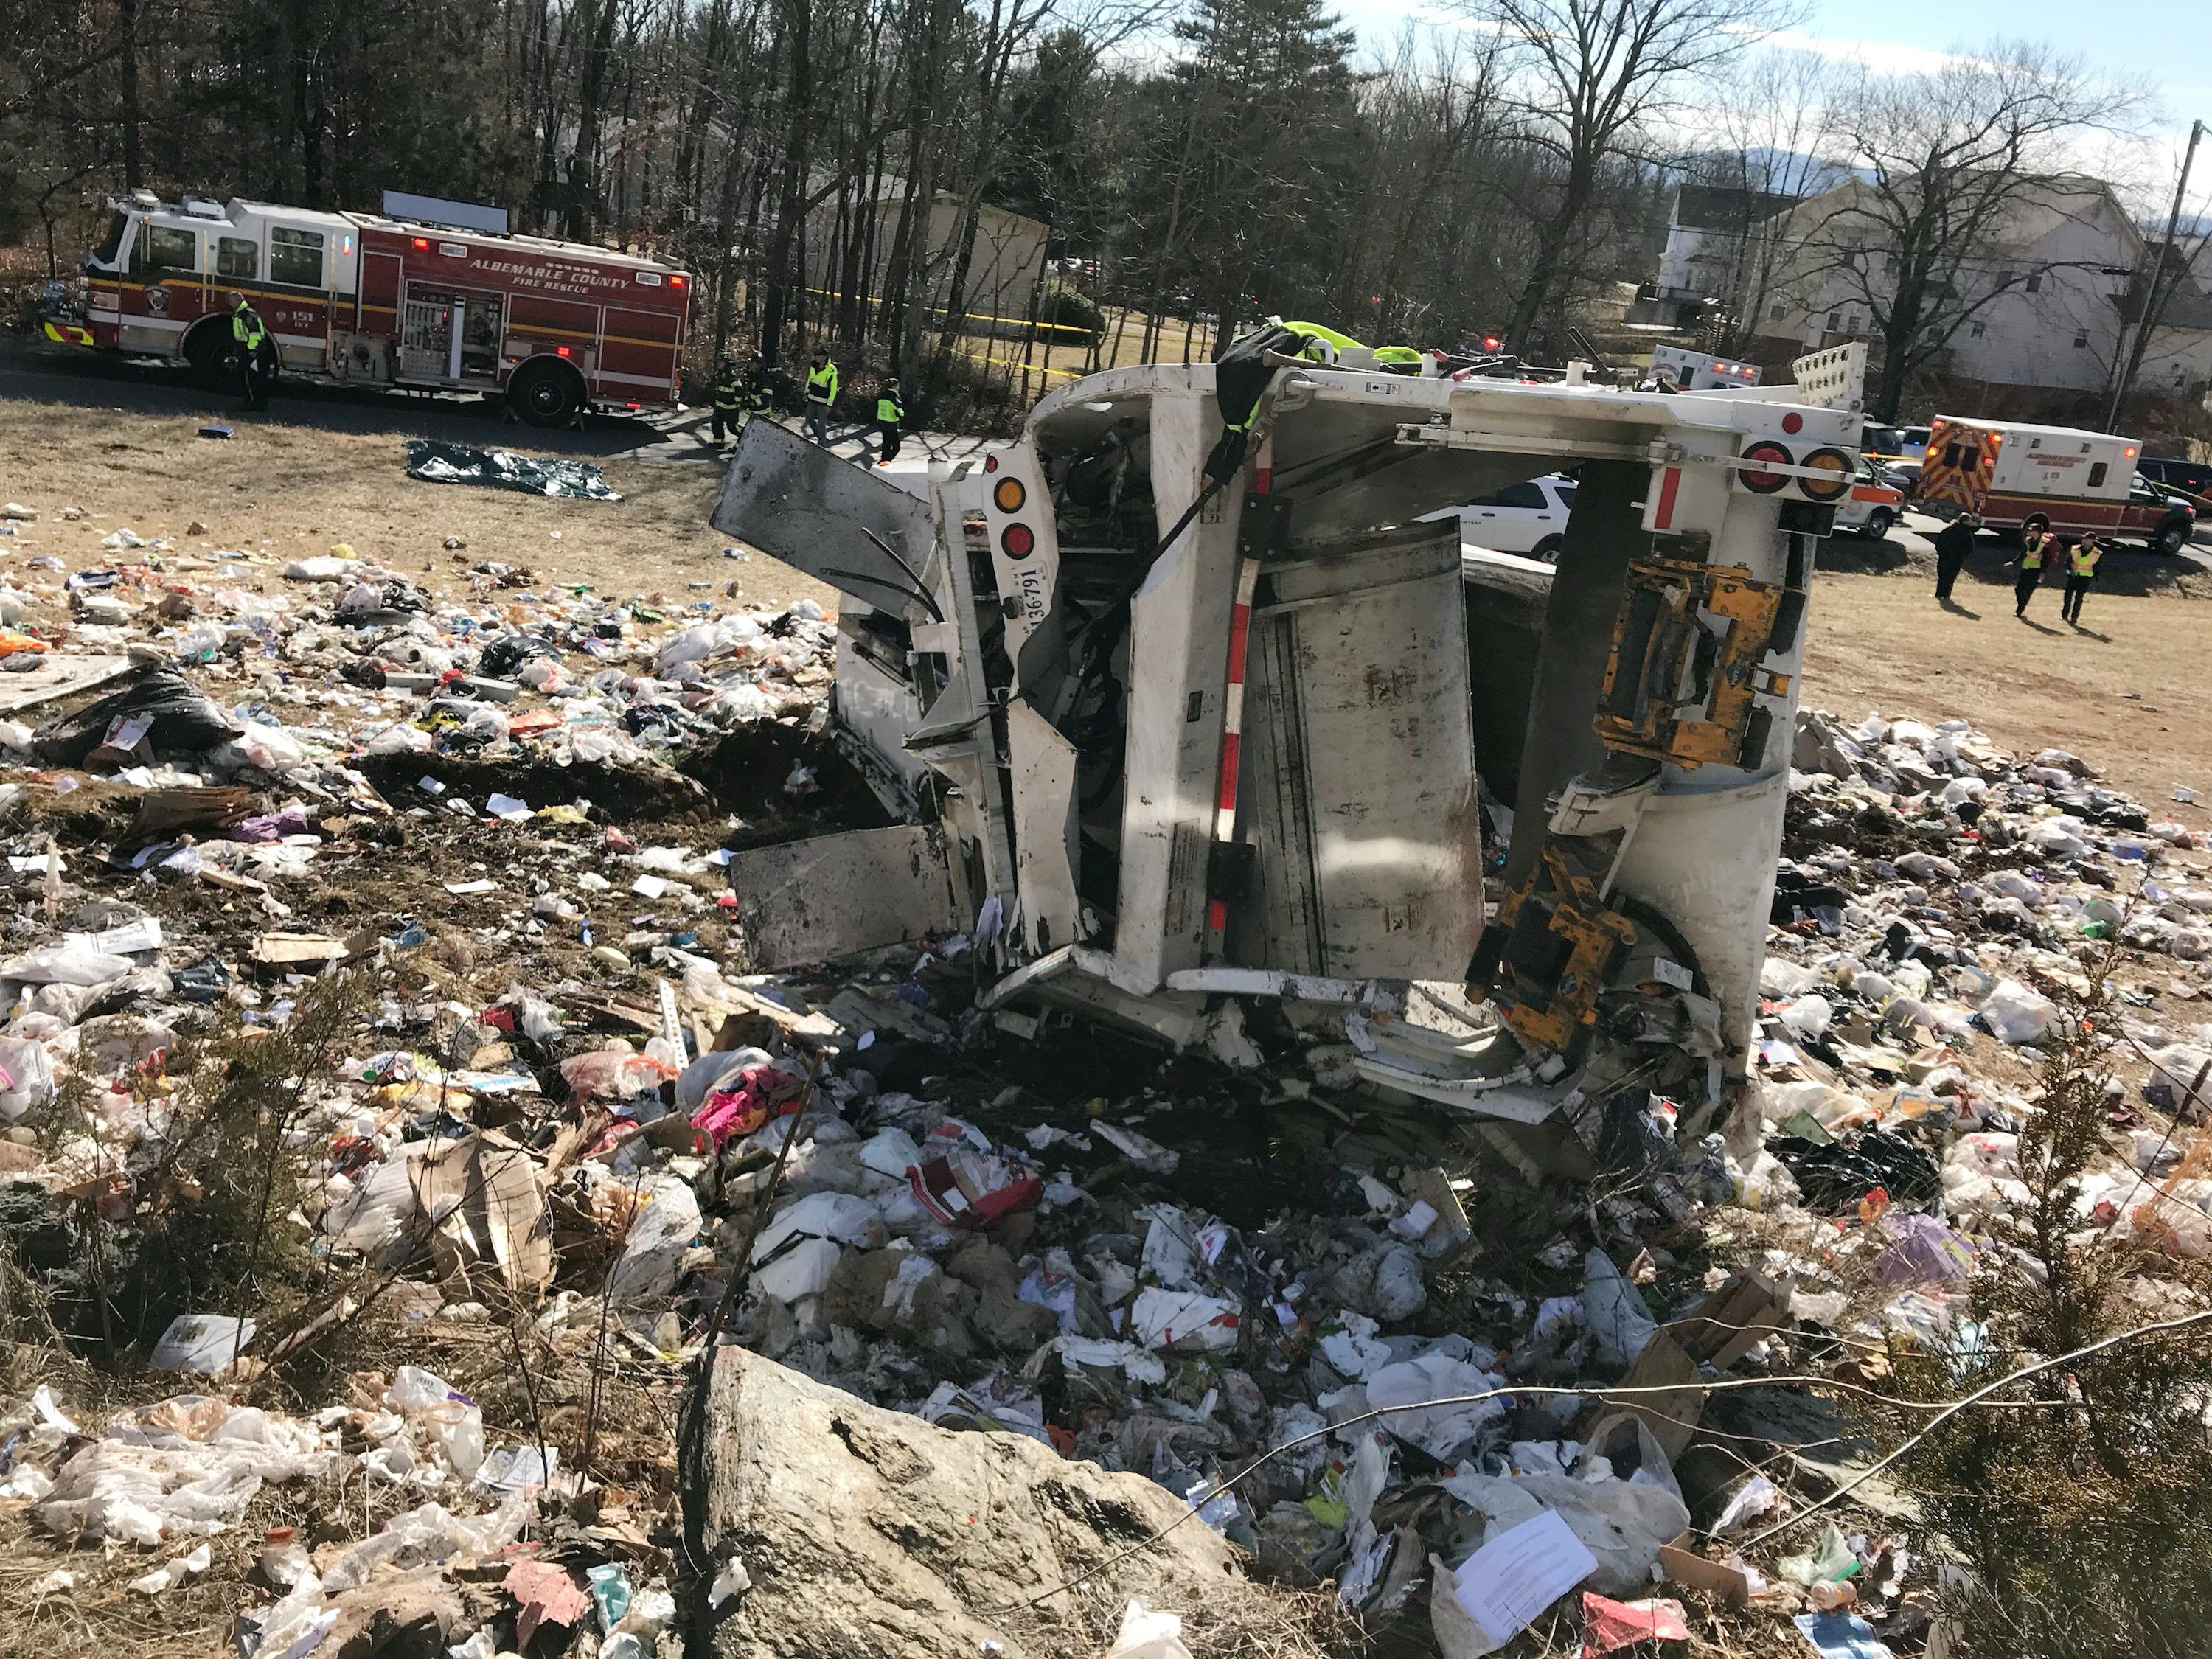 This photo provided by Rep. Greg Walden, R-Oregon, shows a crash site near Crozet, Va., Wednesday, Jan. 31, 2018.   A chartered train carrying dozens of GOP lawmakers to a Republican retreat in West Virginia struck a garbage truck south of Charlottesville, Virginia on Wednesday, lawmakers said. (Rep. Geg Walden via AP)